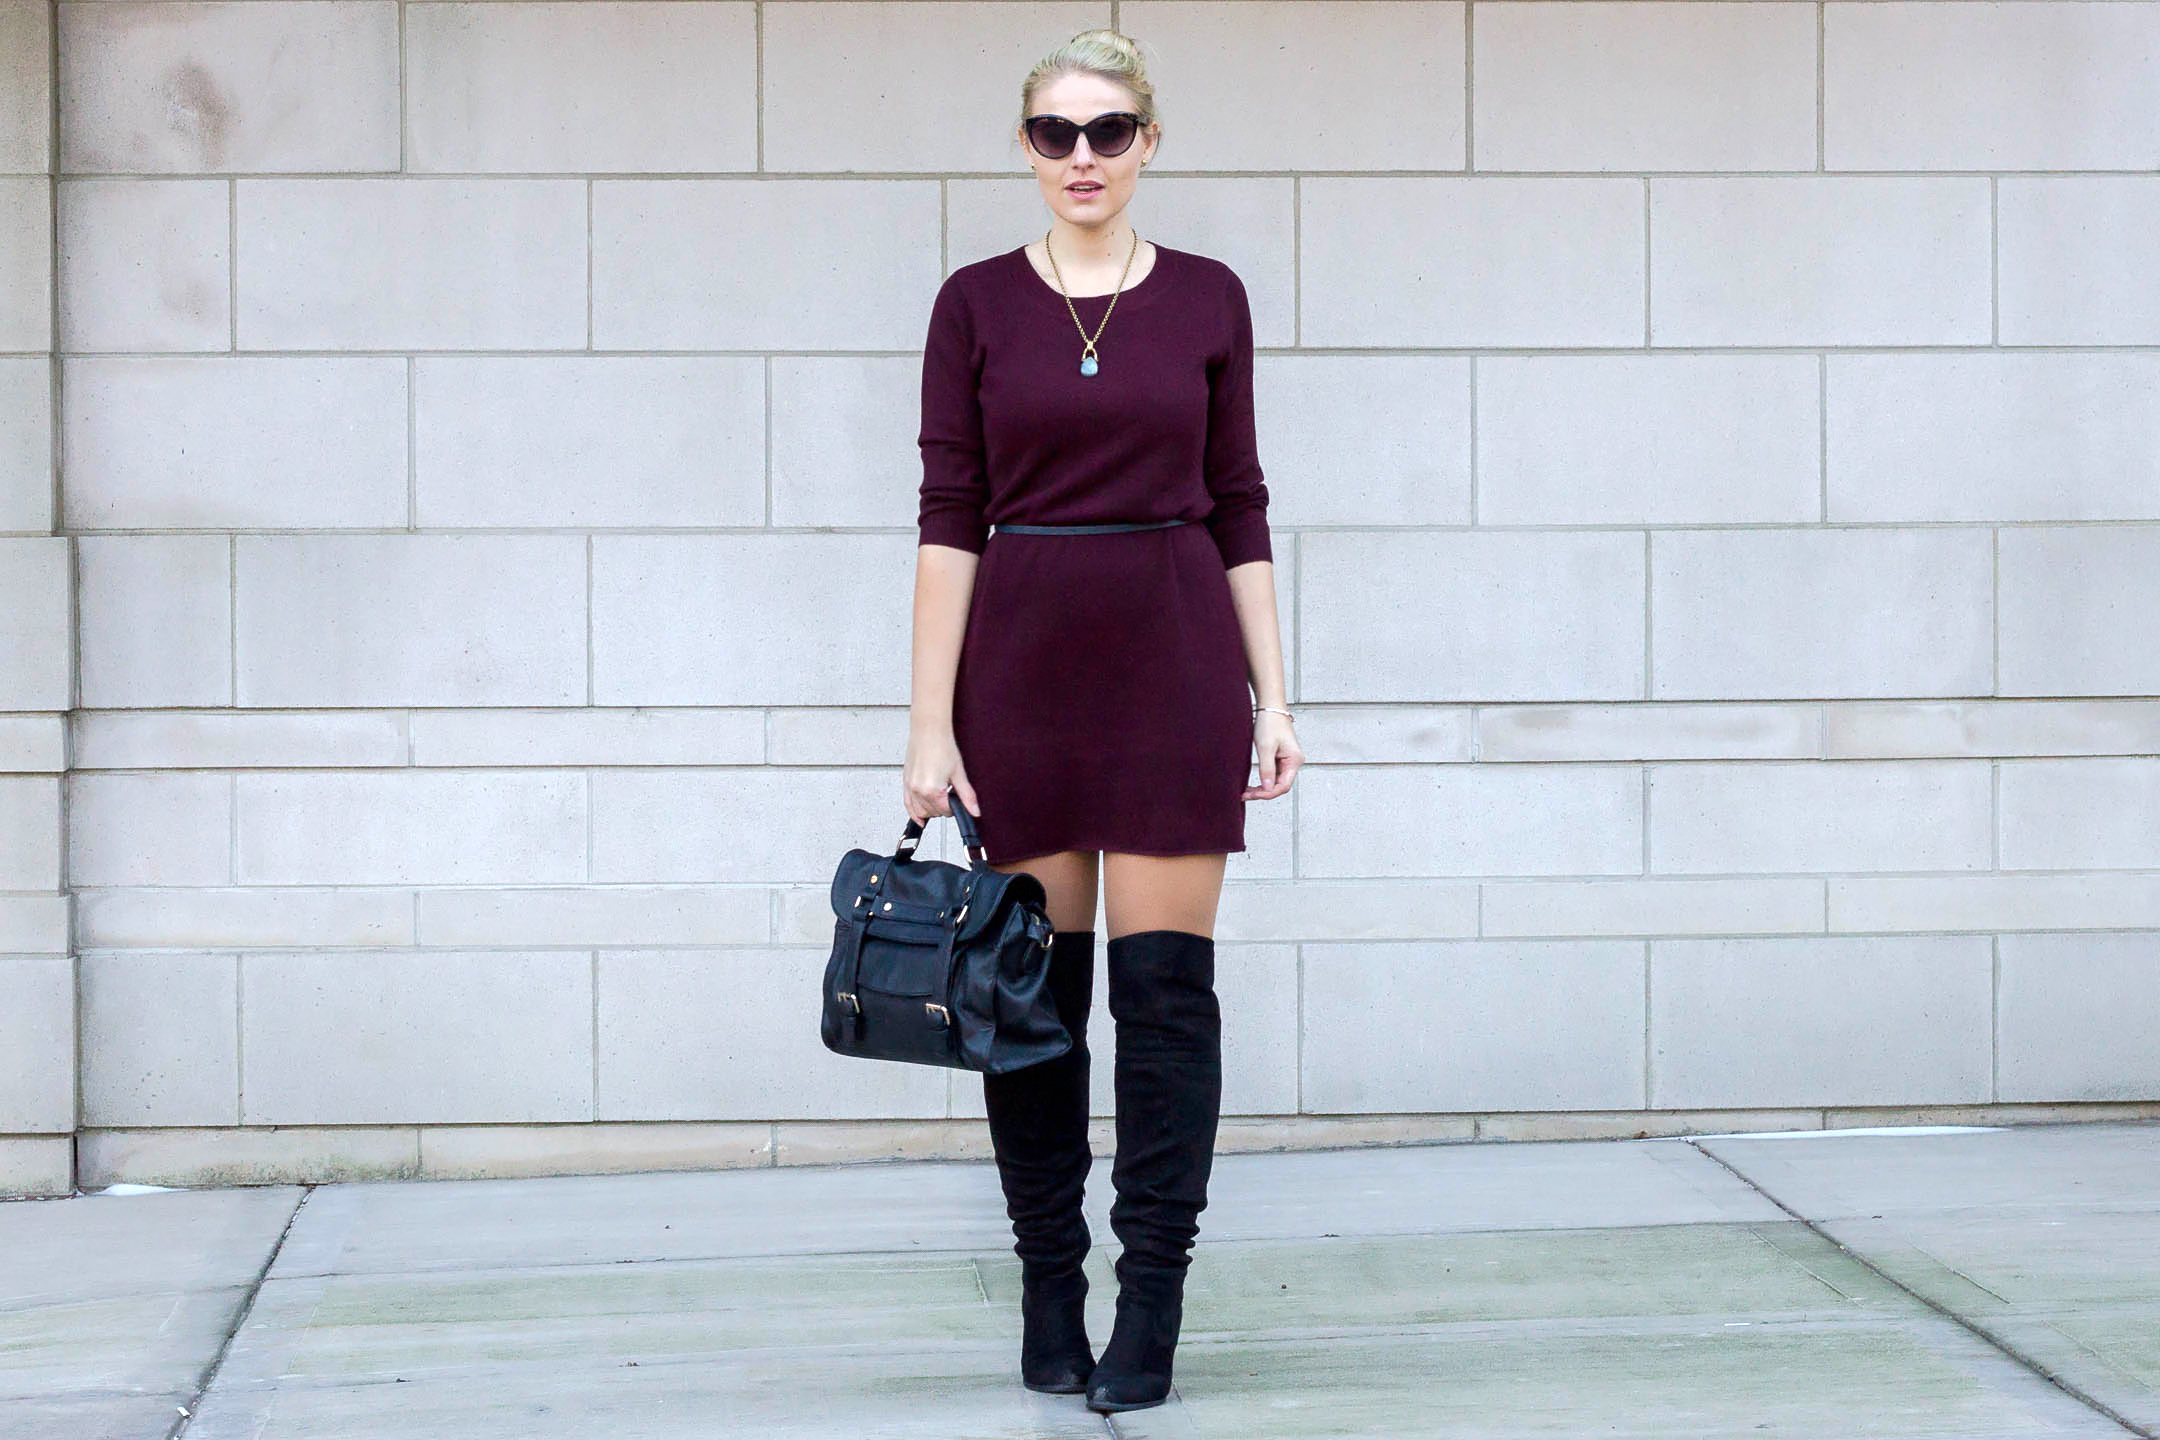 The Cozy Sweater // Dress Form